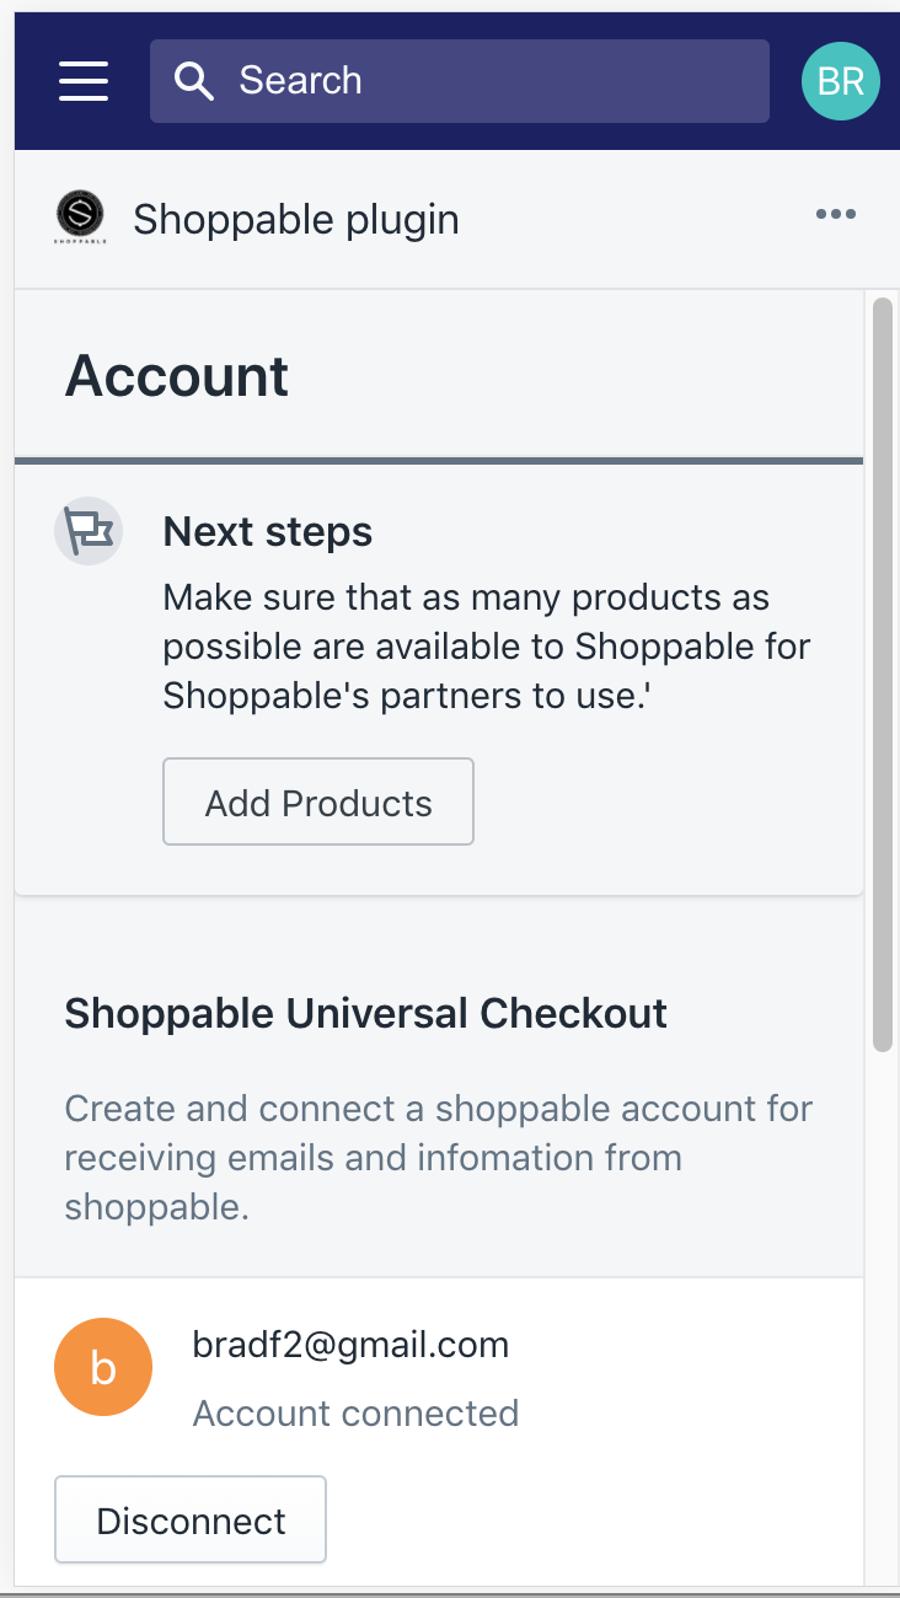 Connect with Shoppable®